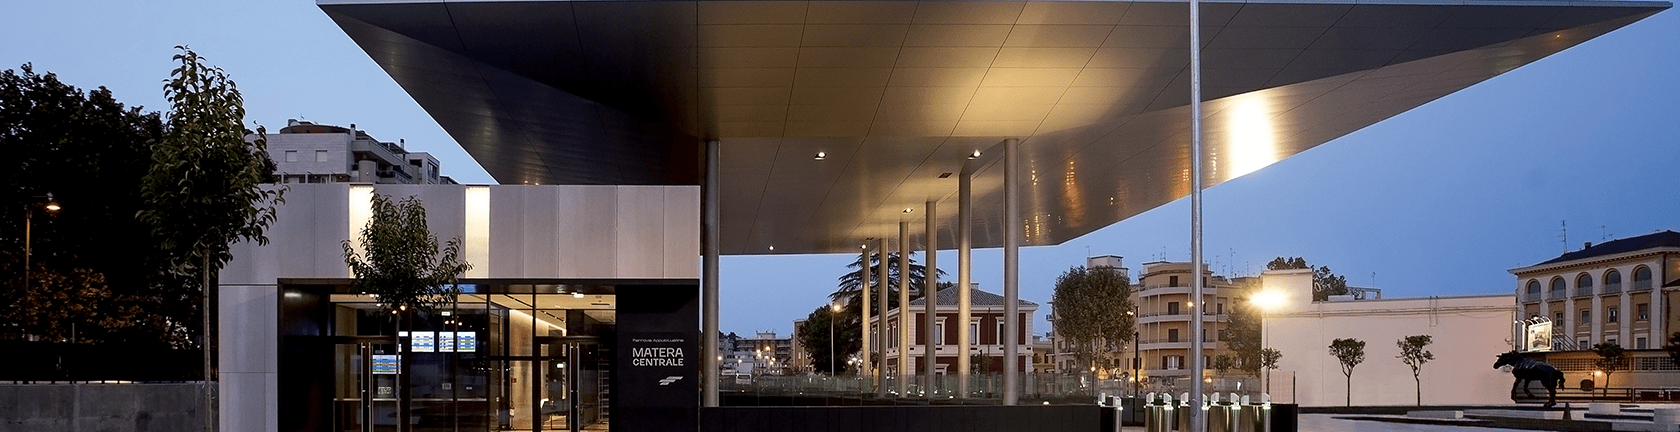 Matera Central Railway Station